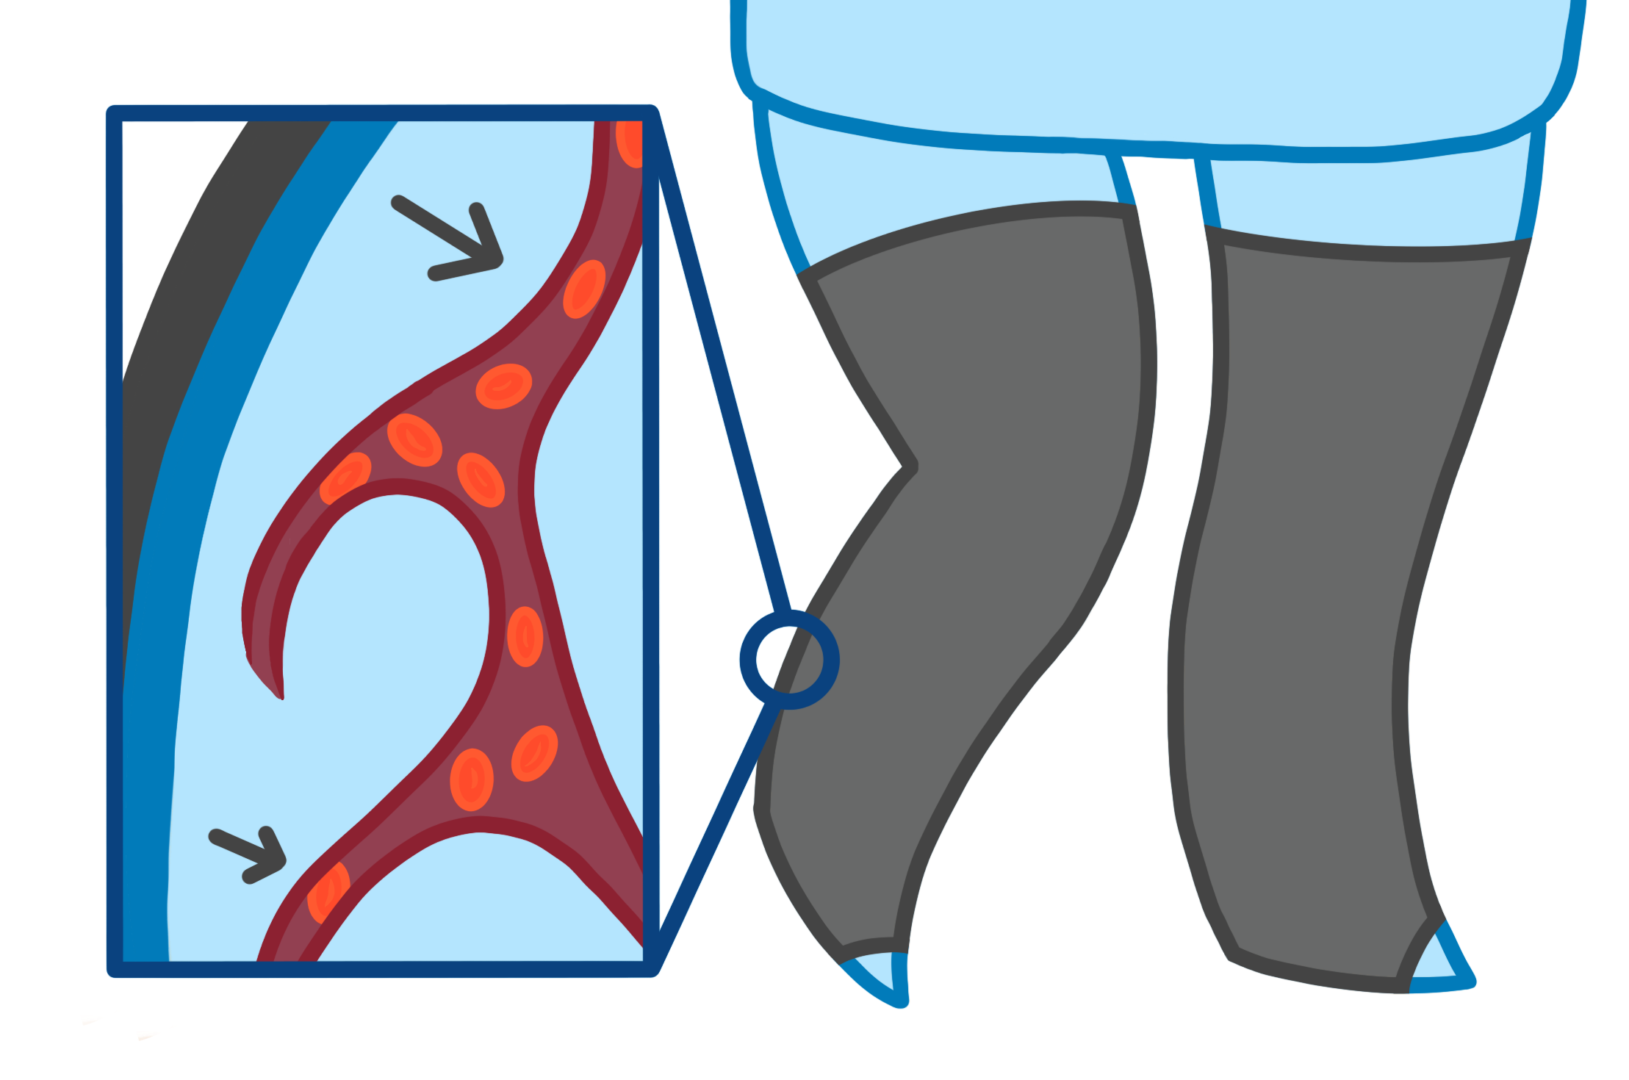 legs with compression stockings for varicose veins